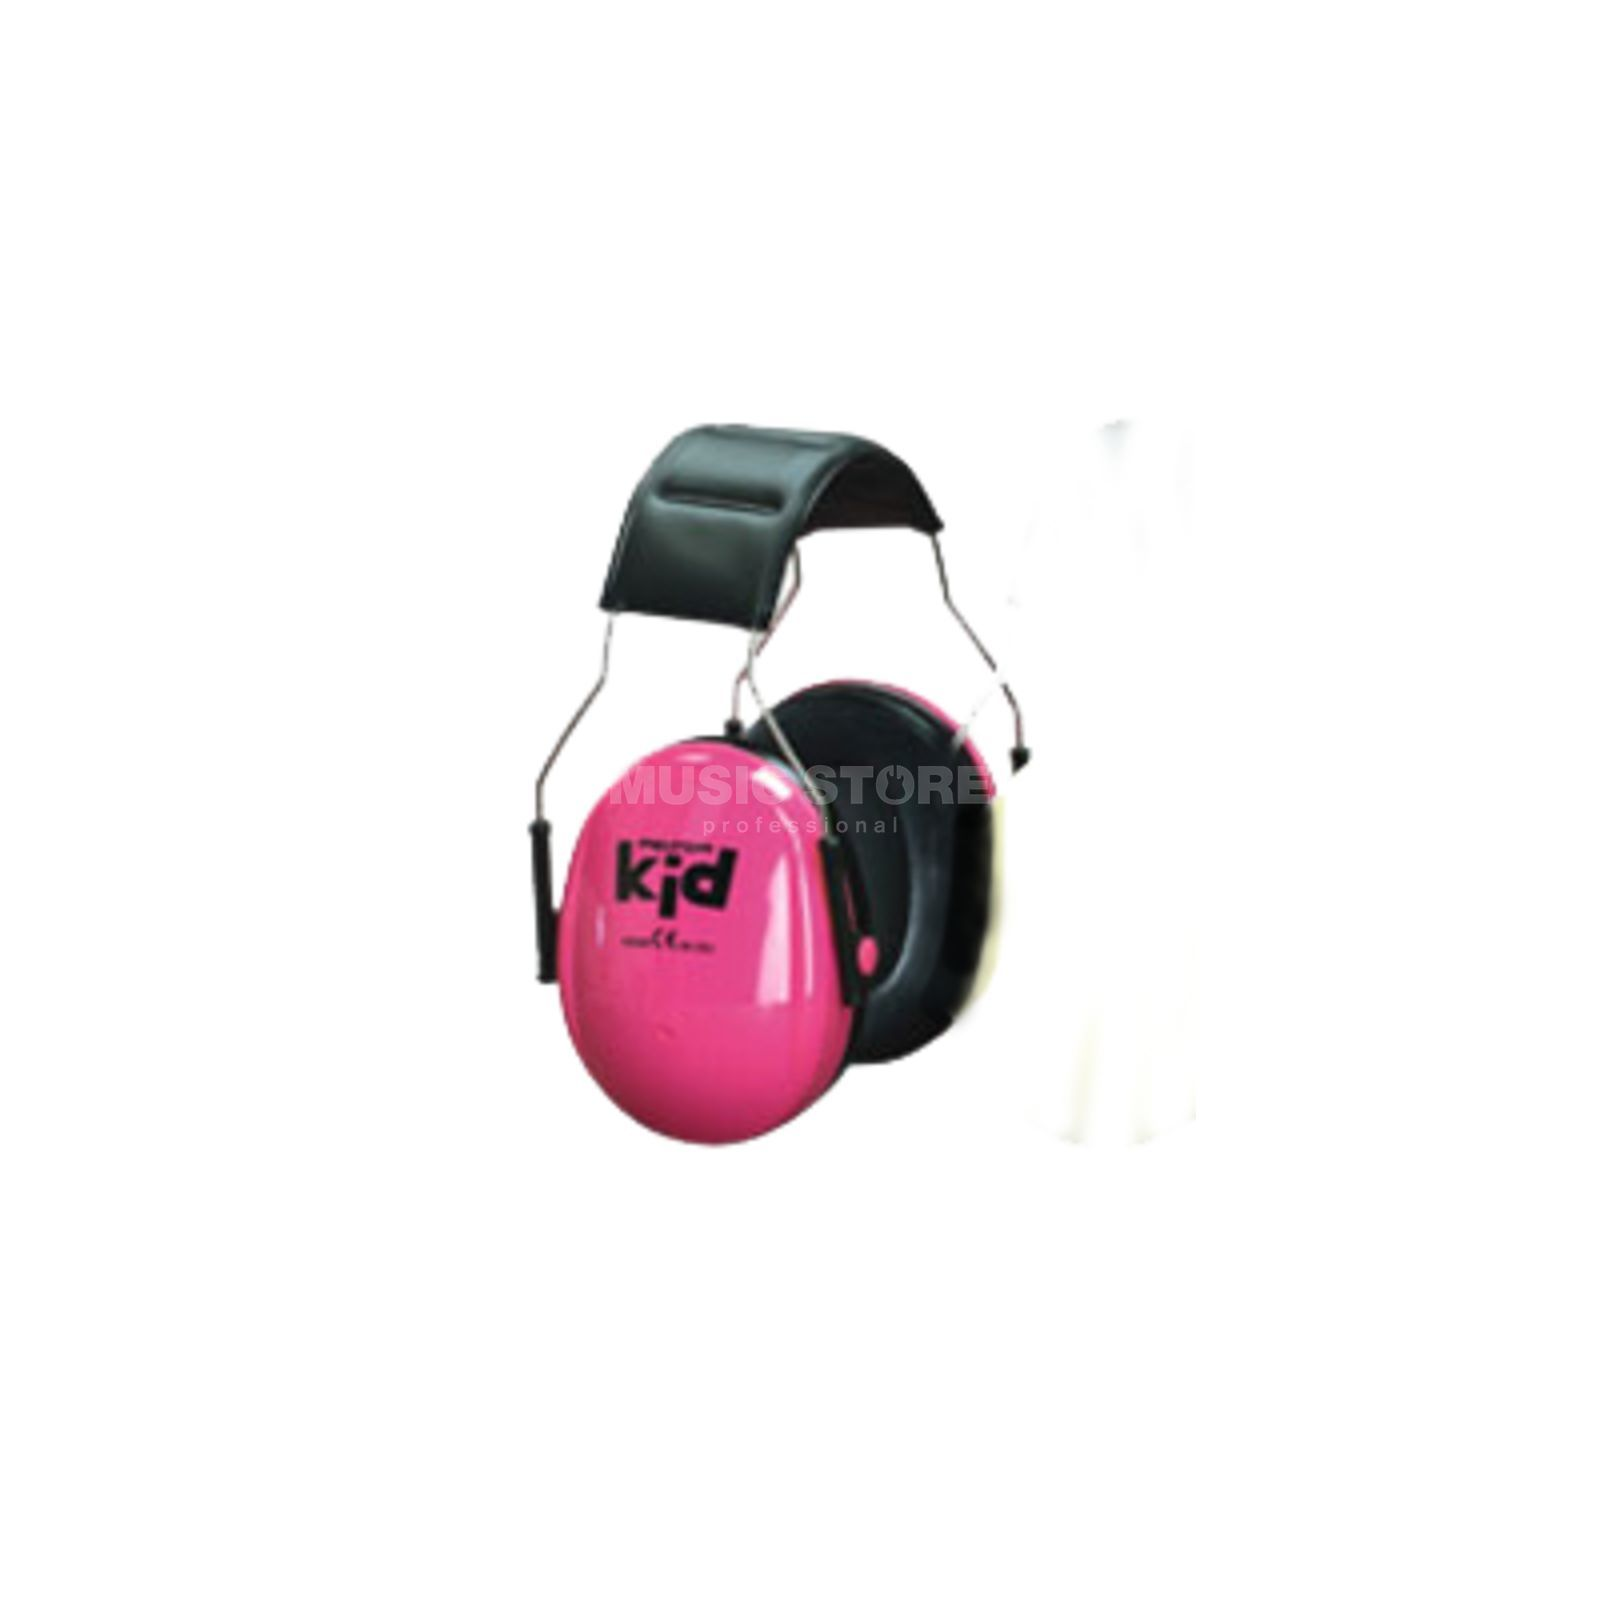 Peltor Kid Hearing Protection for Childeren, pink Product Image